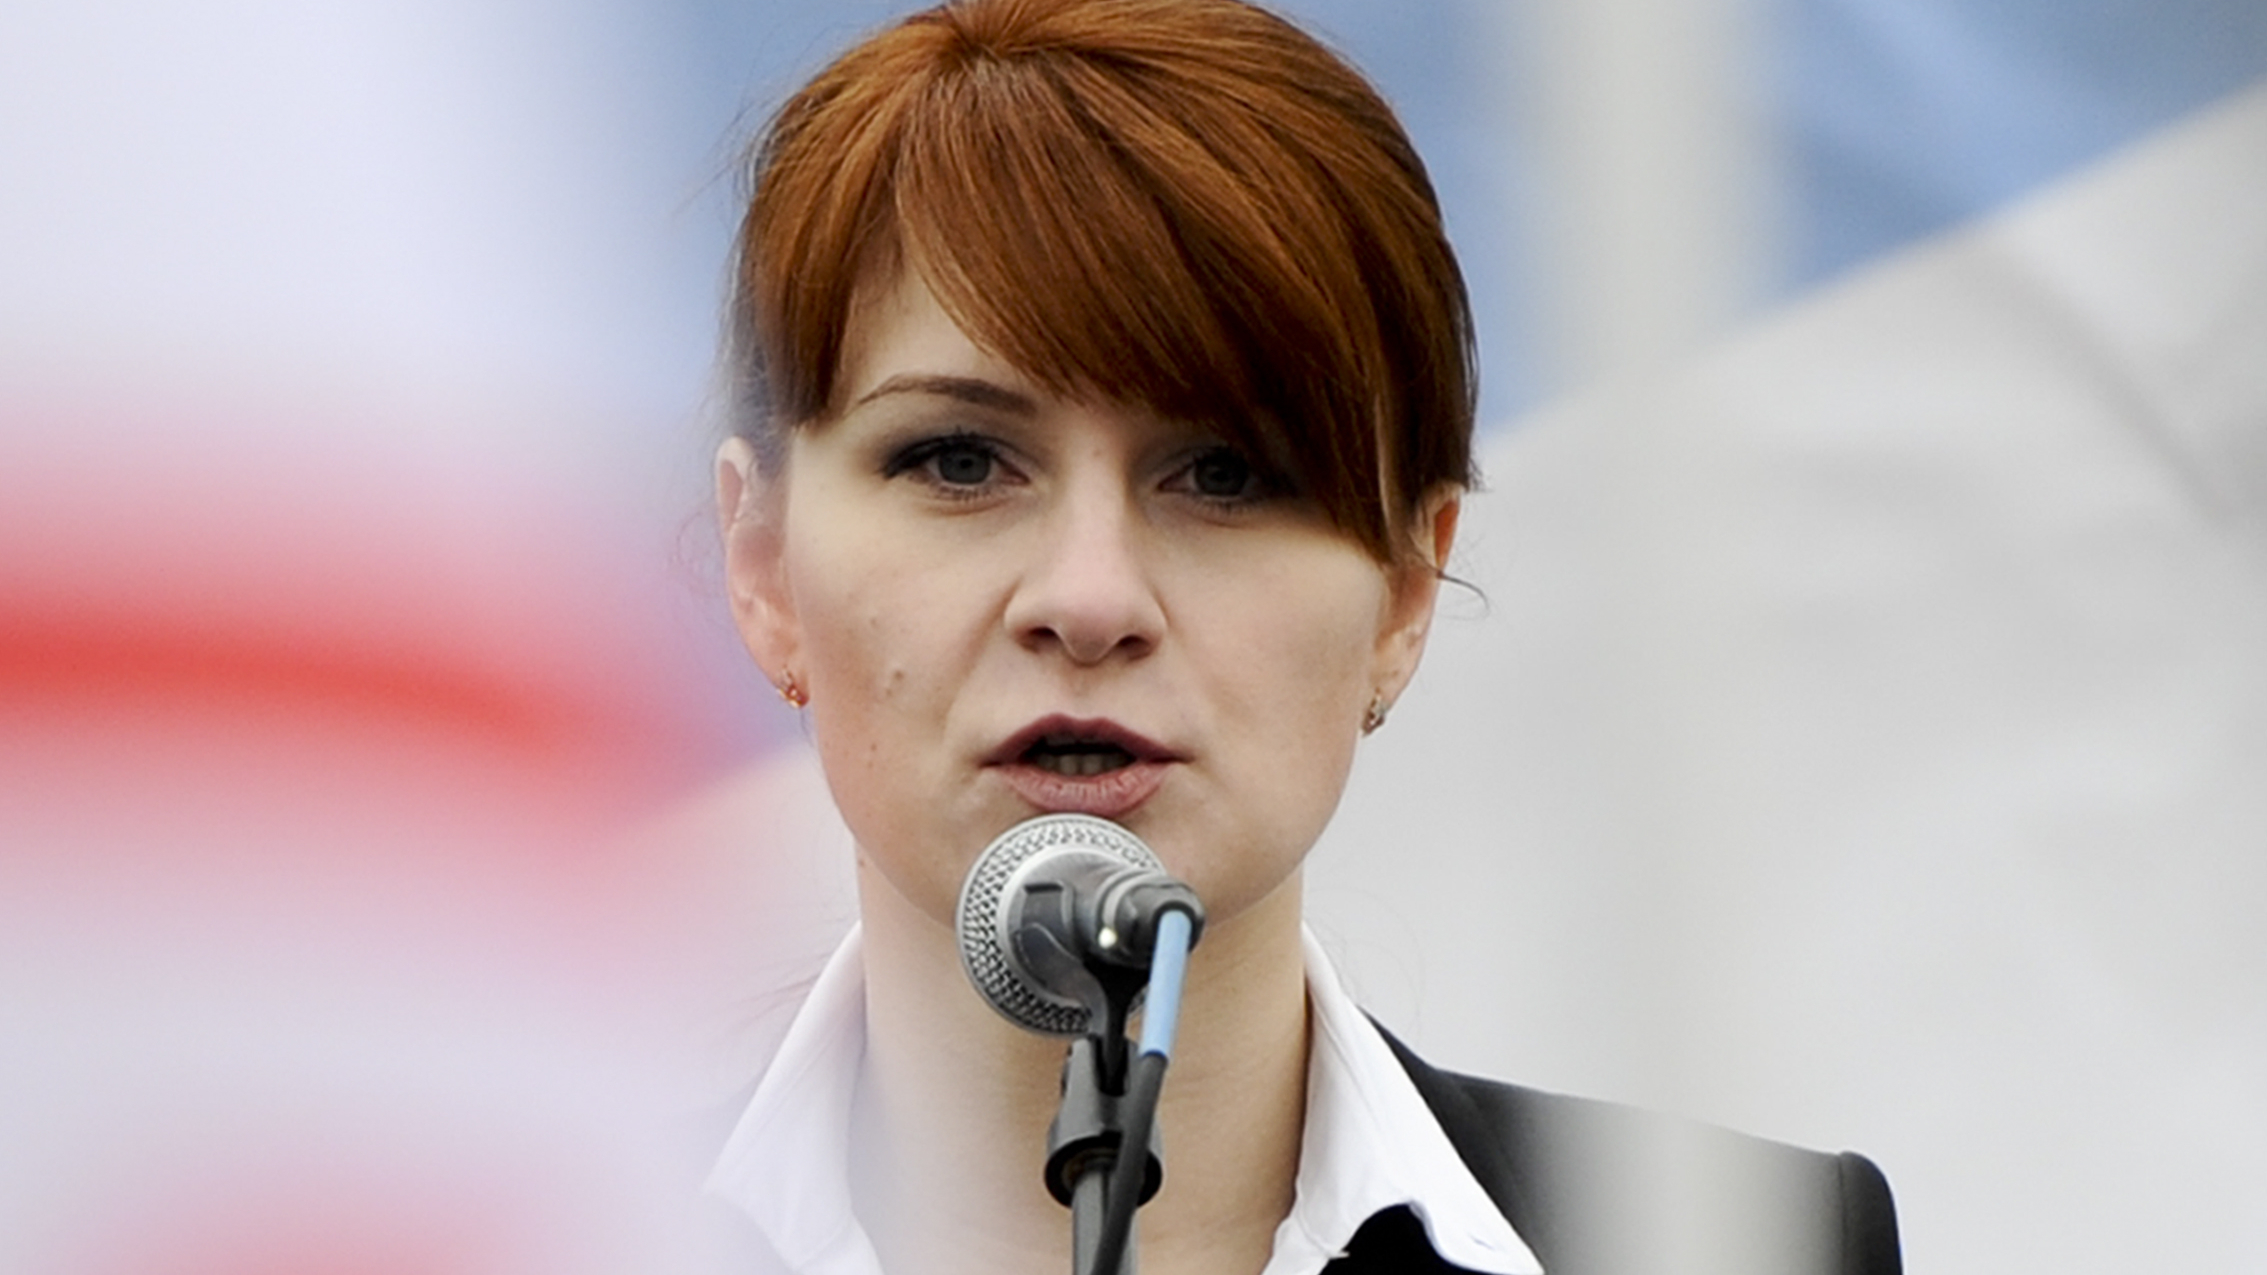 Prosecutors said on Wednesday the FBI has information that Maria Butina has been in contact with Russia's FSB spy agency for as long as she has been in the United States.